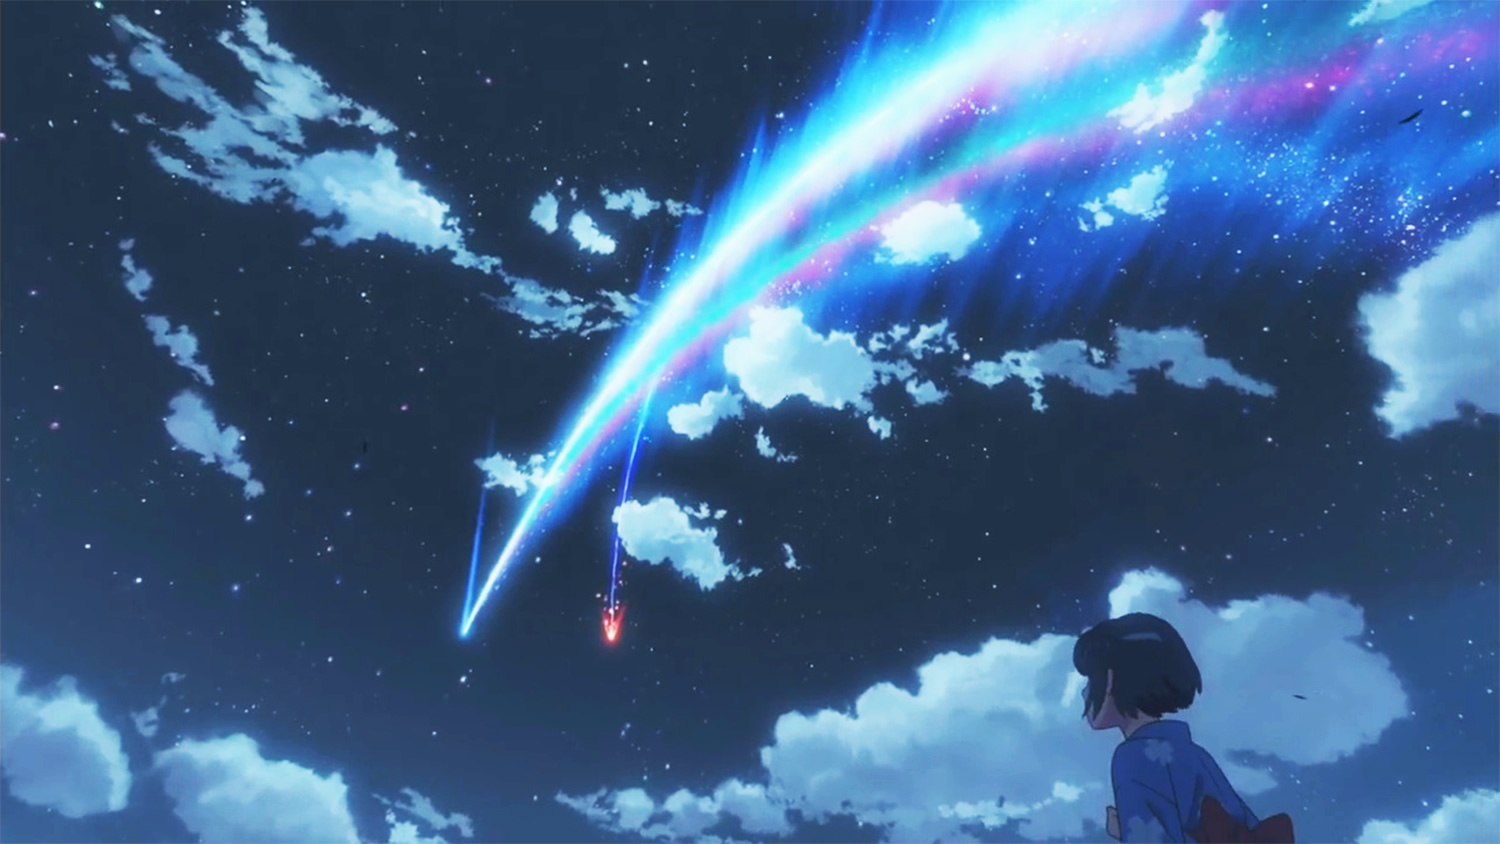 Girl looking at the sky comet flying over kimi no na wa